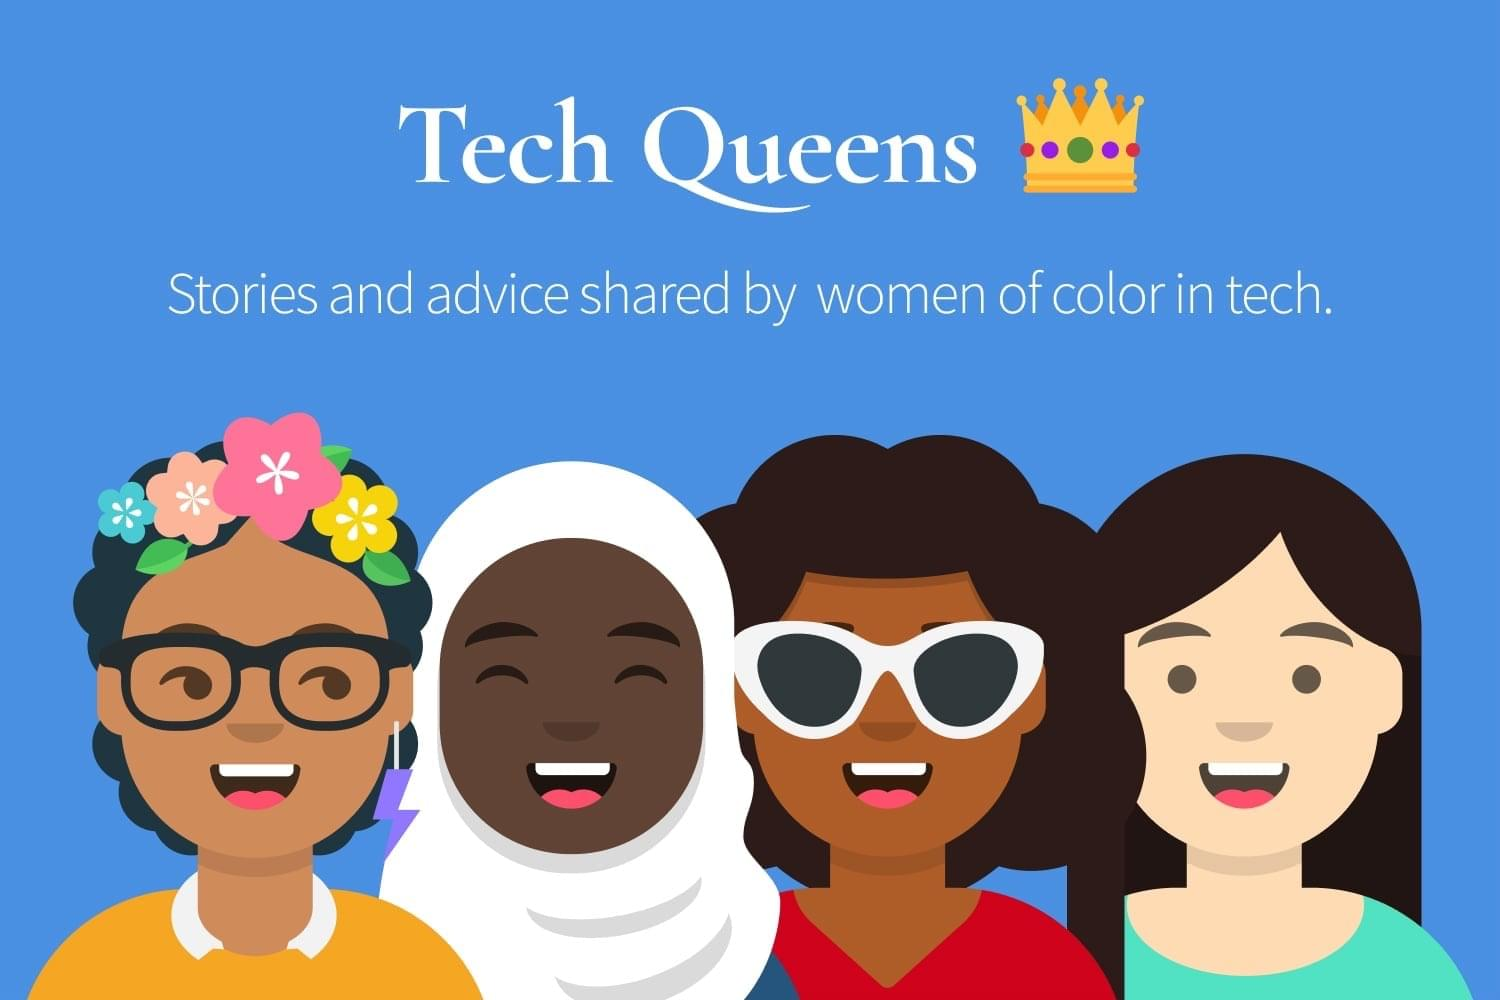 Become a Tech Queen